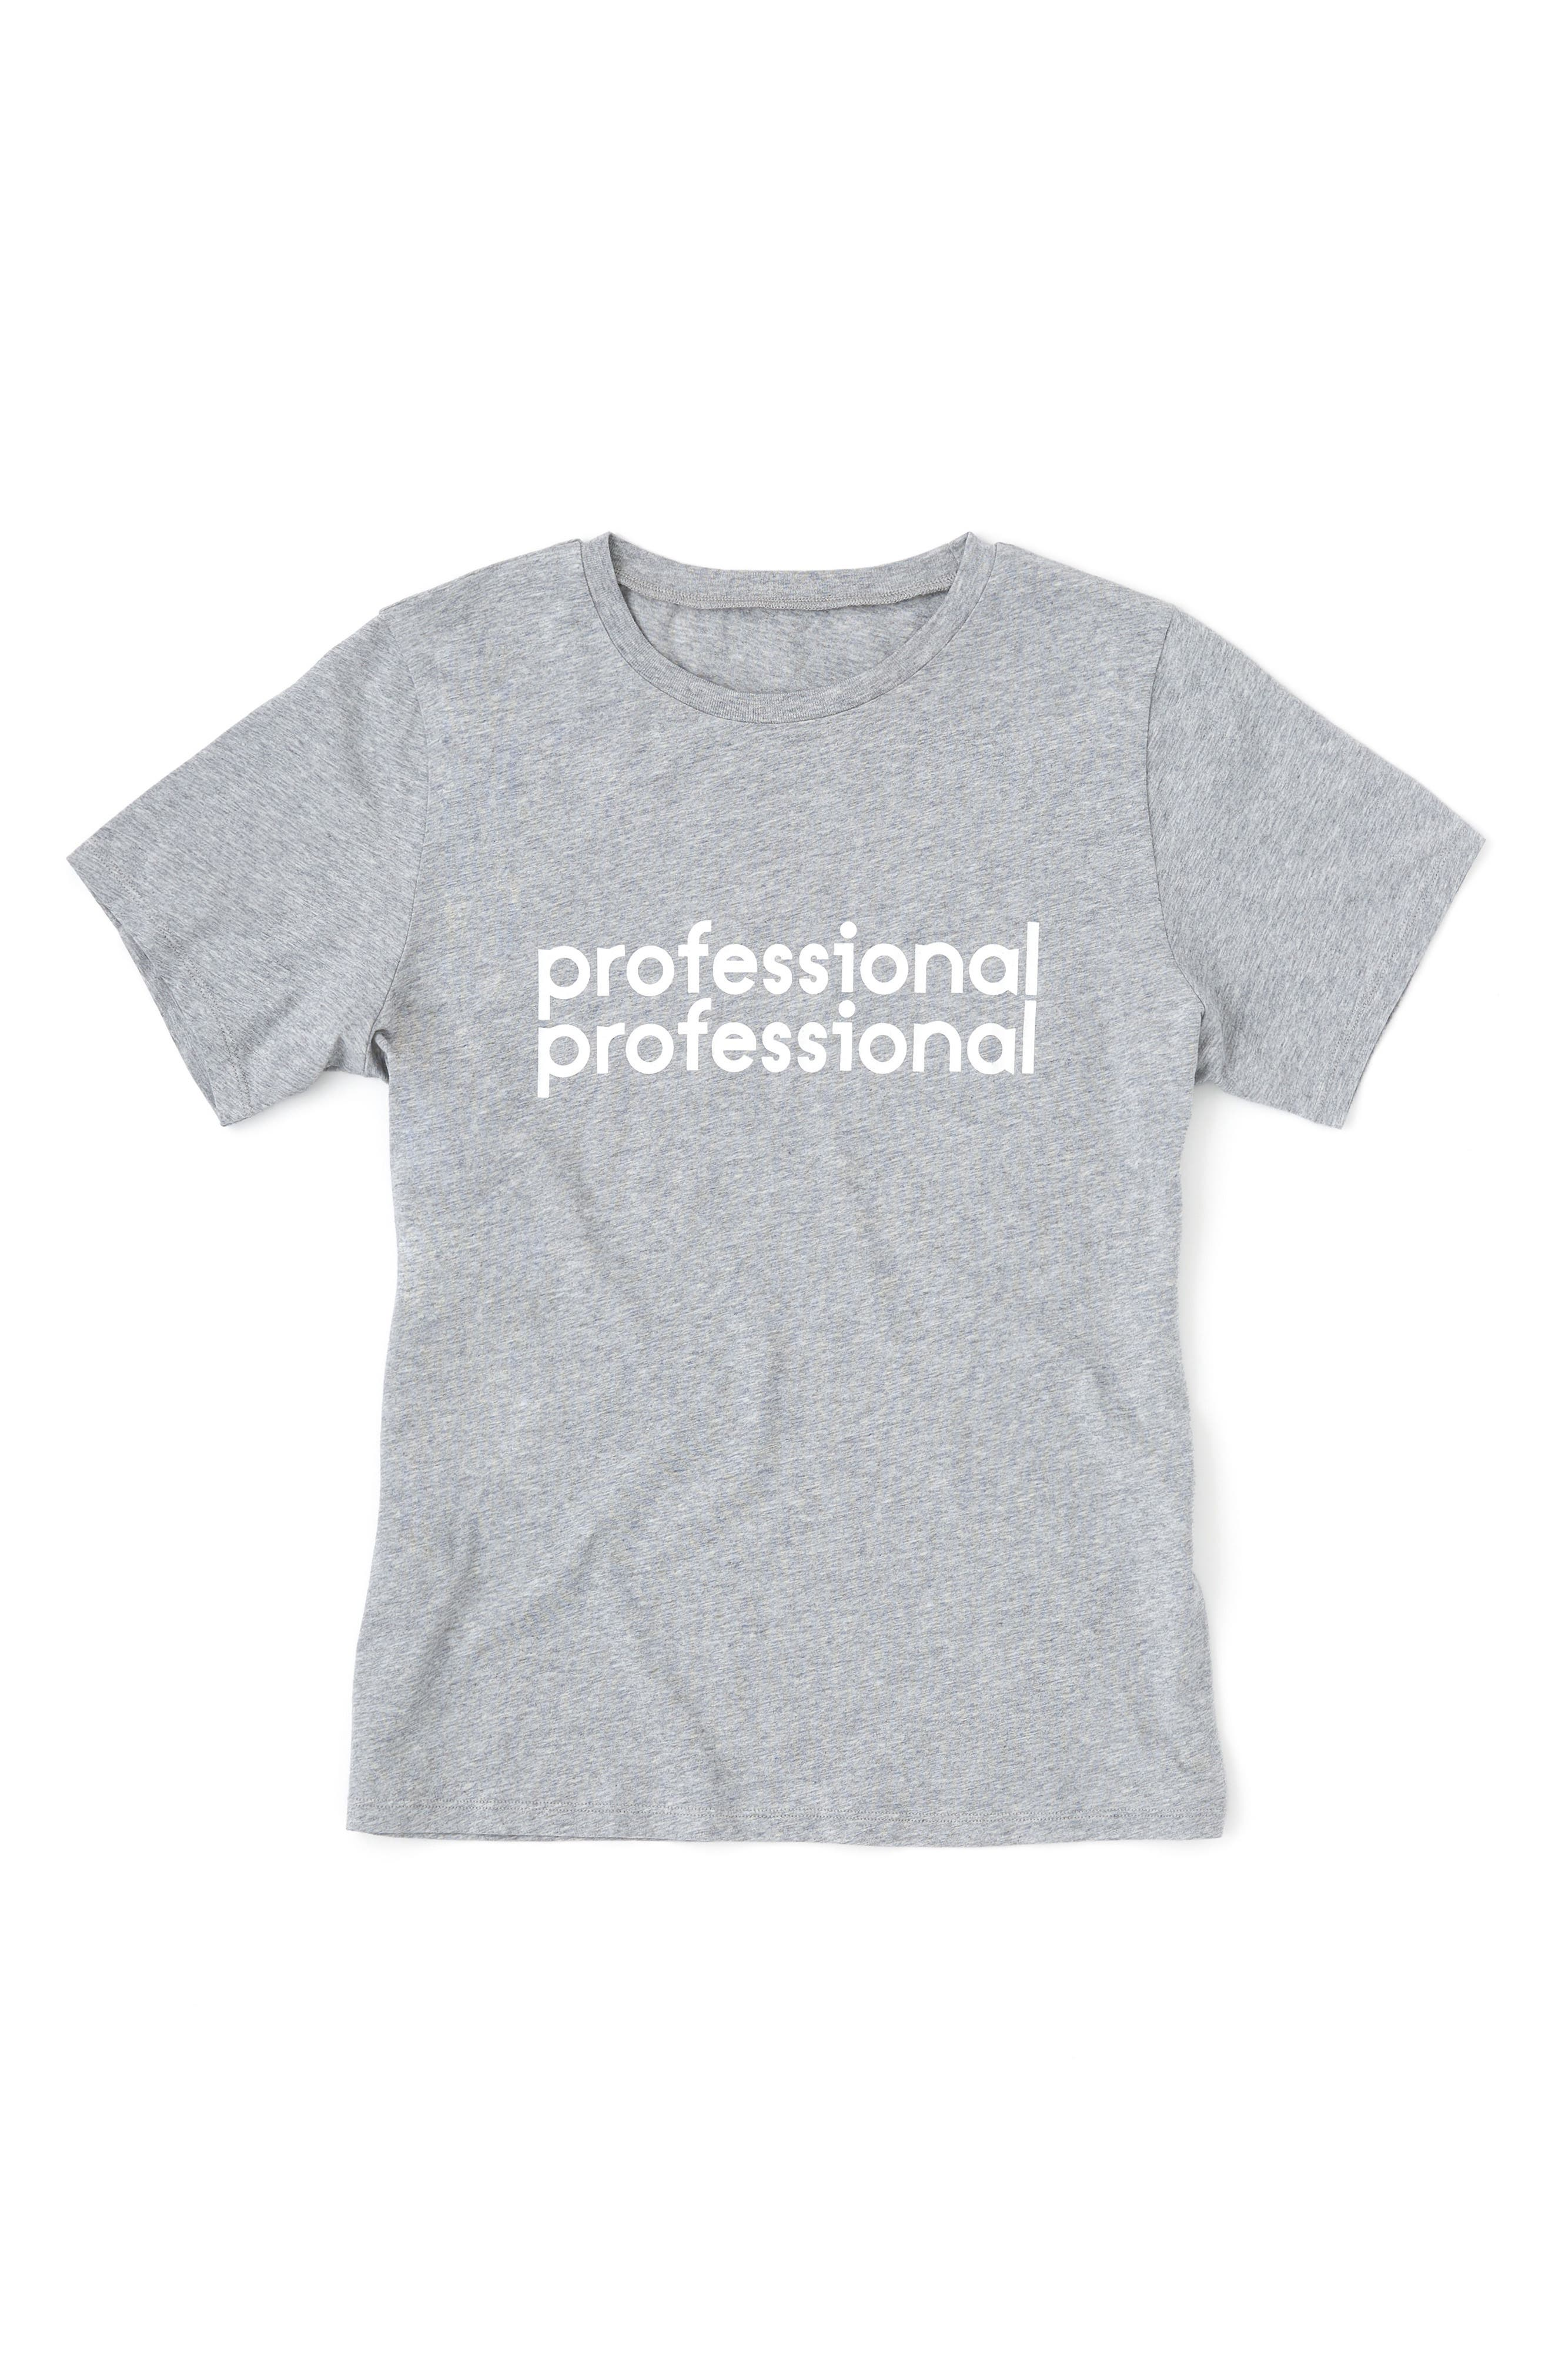 Professional Professional Classic Tee,                             Alternate thumbnail 2, color,                             051